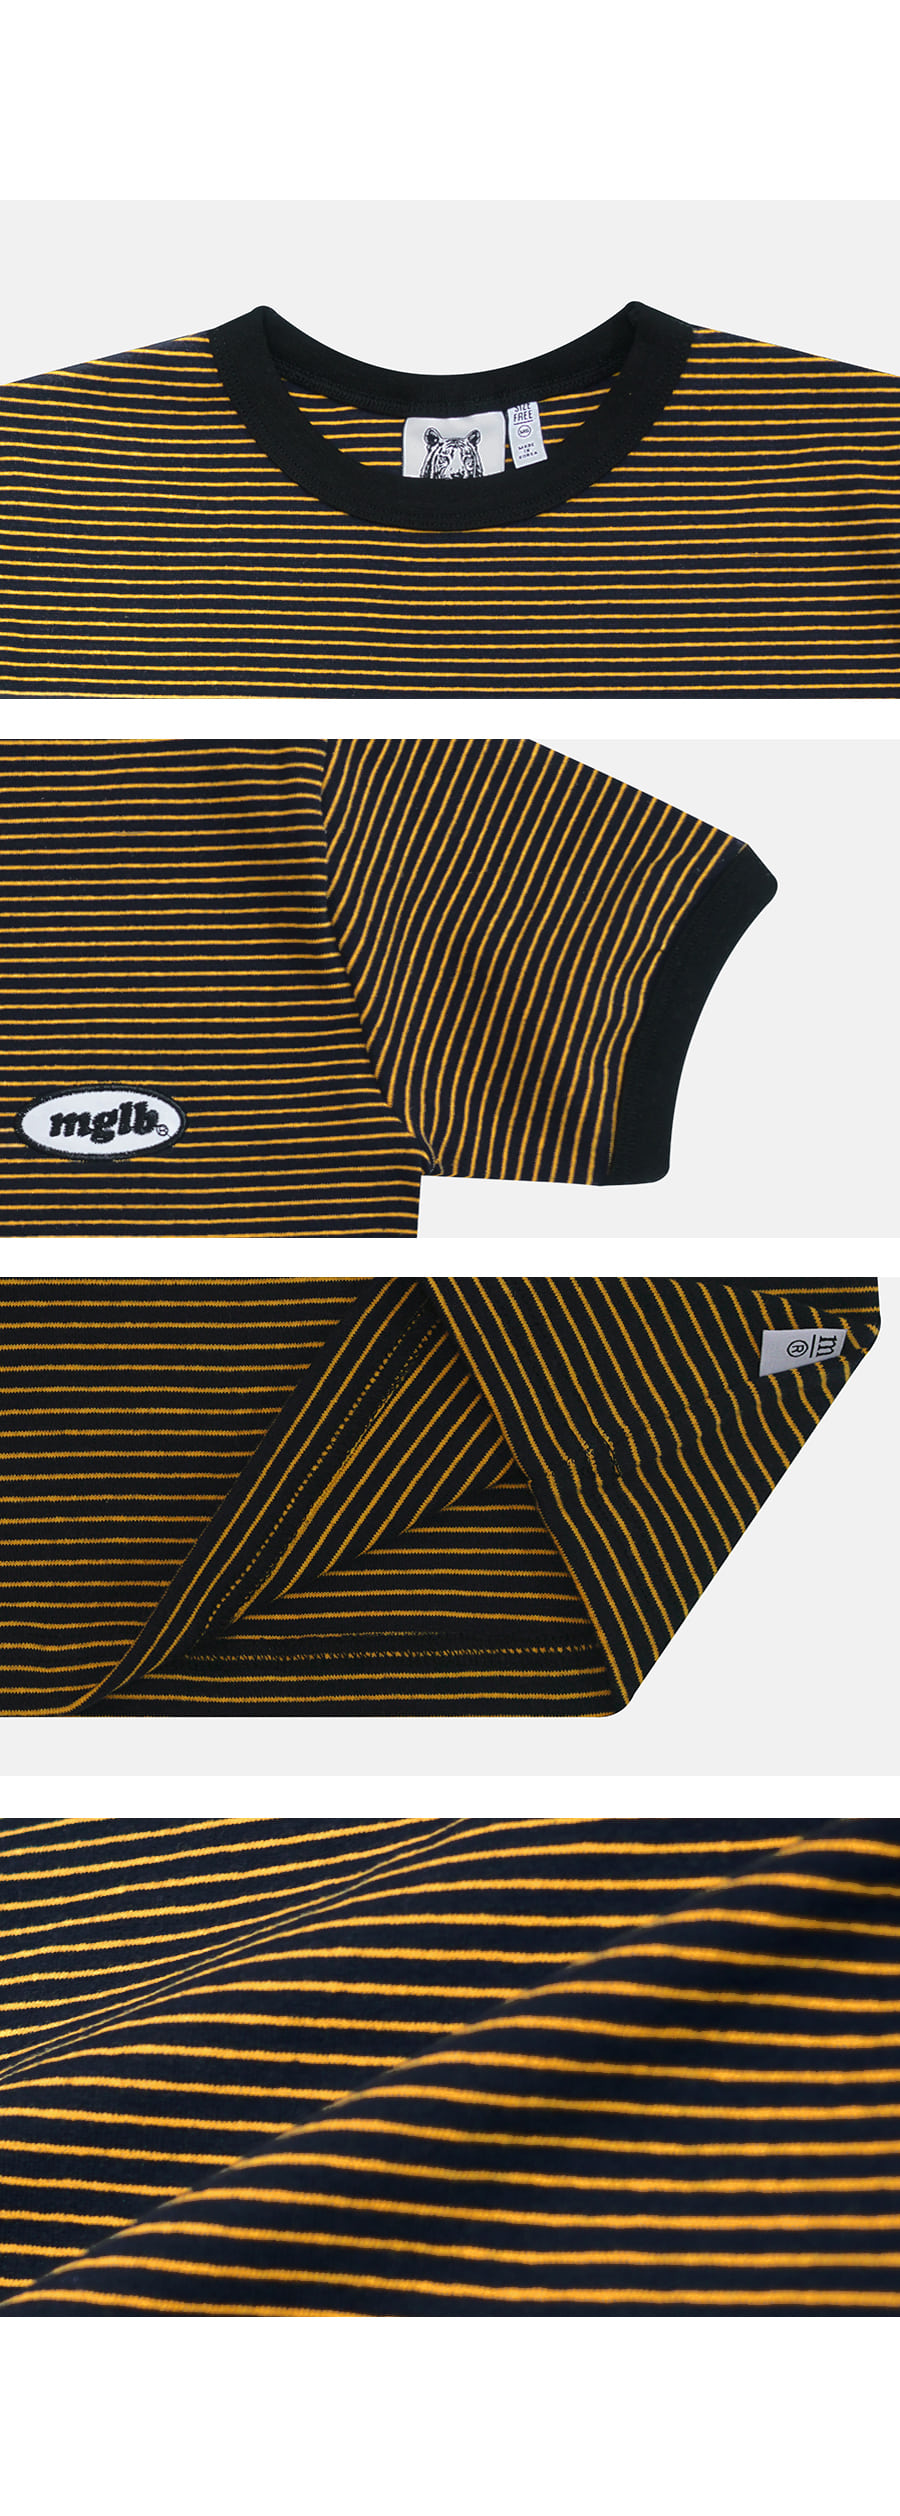 매치글로브(MATCHGLOBE) MG9S STRIPE MG CROP TEE (NAVY)